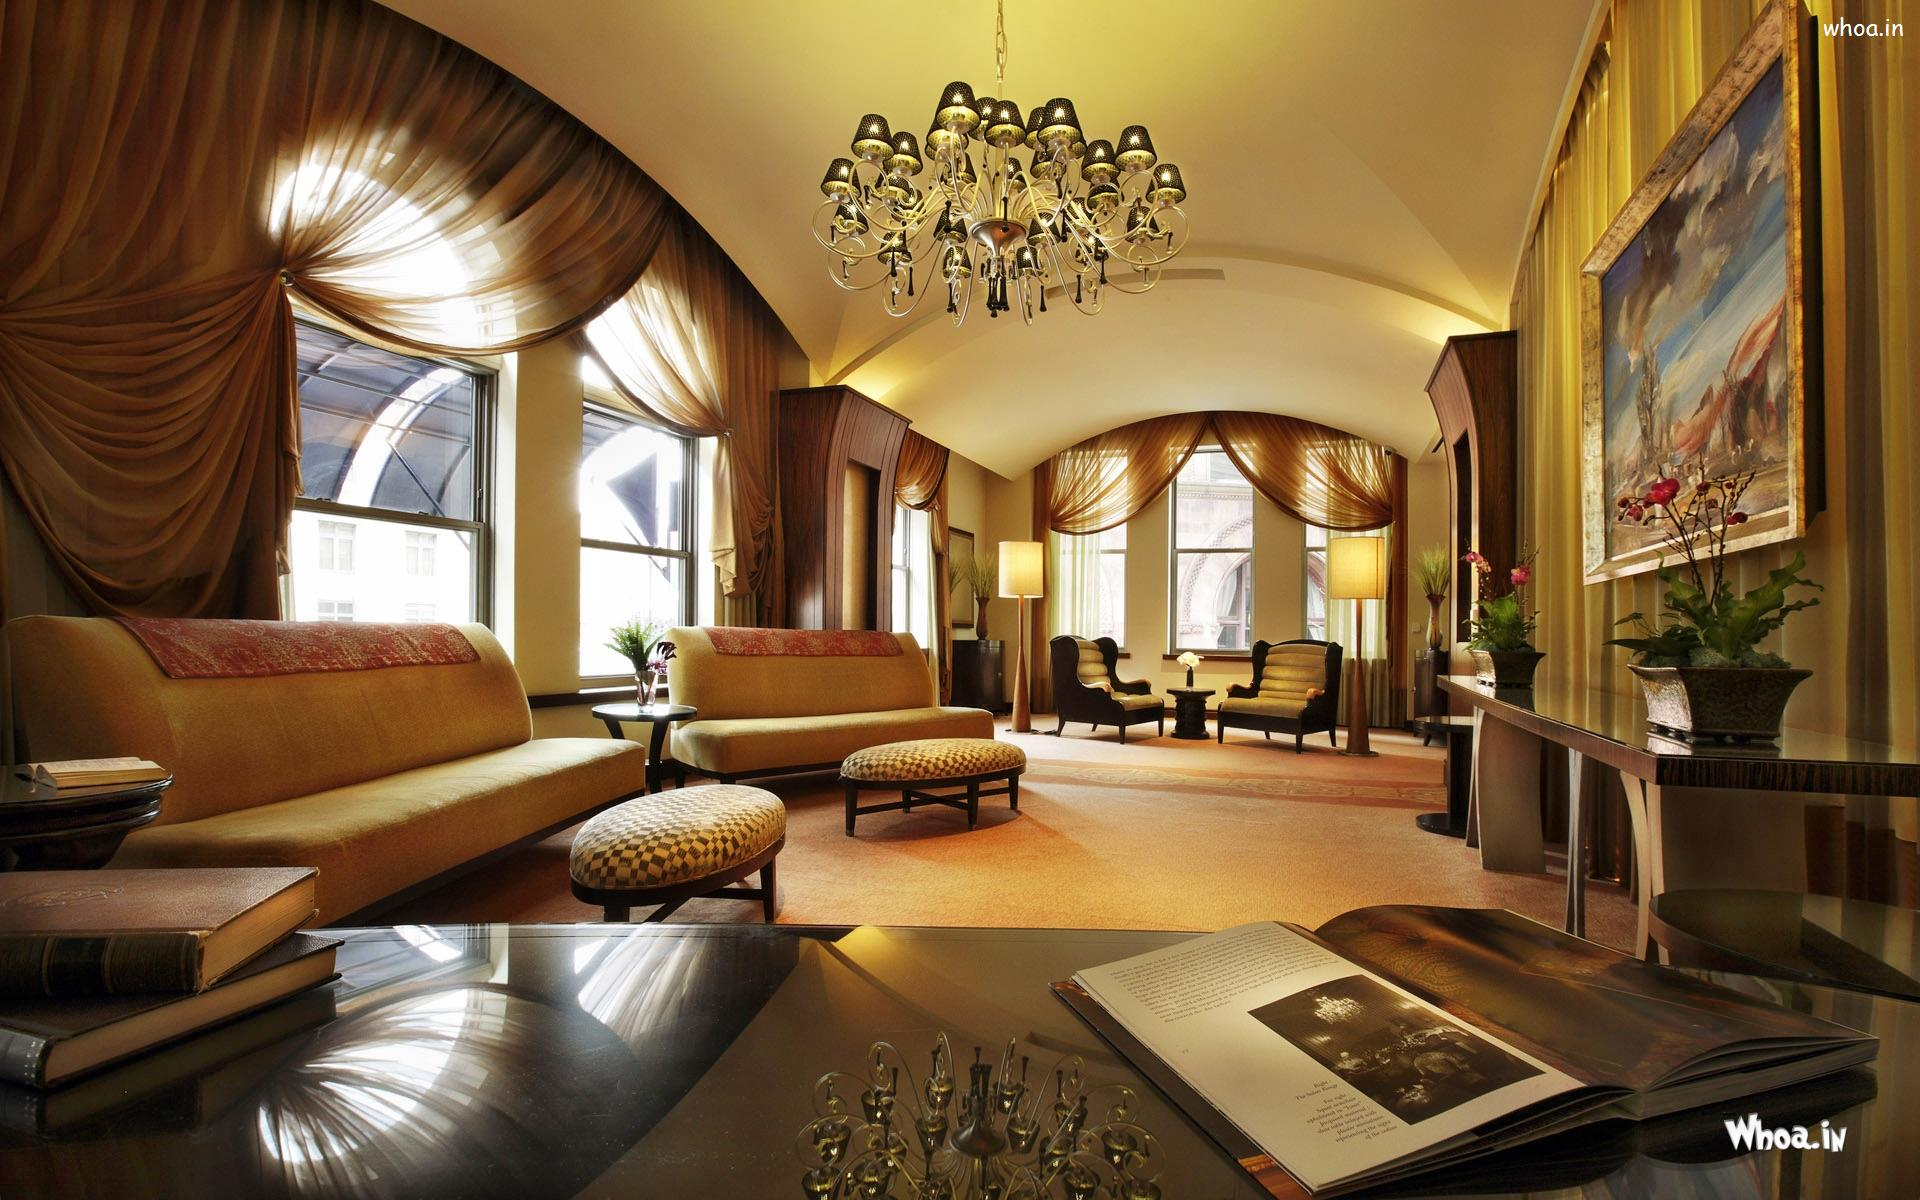 Luxurious Sofa For Royal Hotel And Living Room